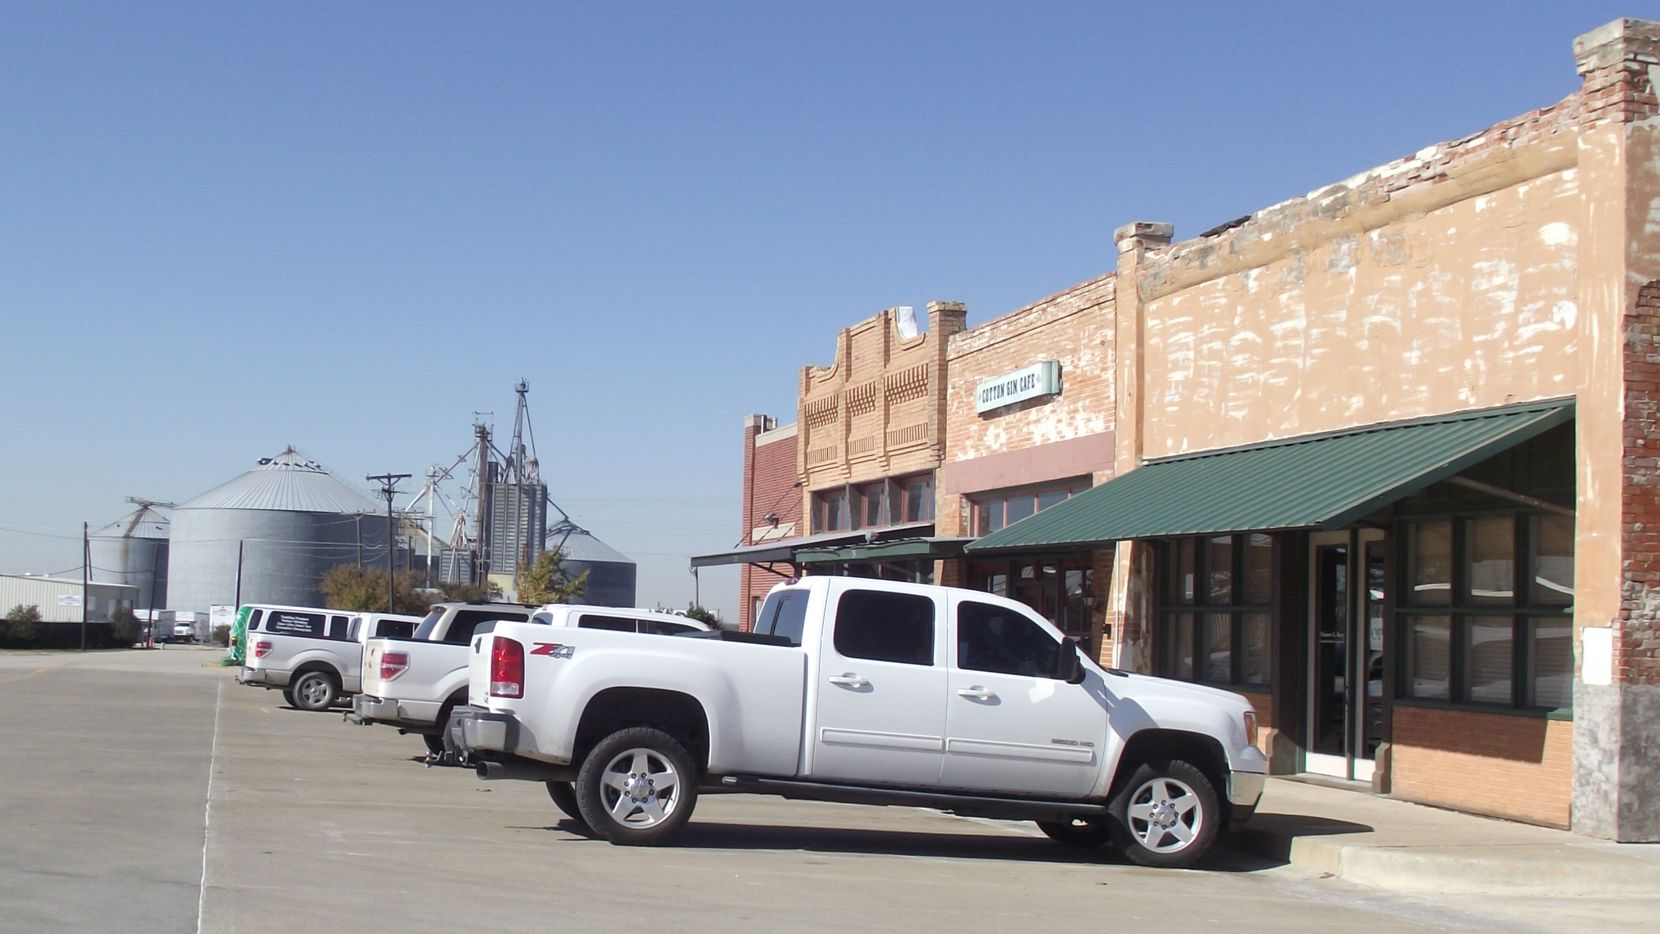 Prosper's historic downtown area dates to the early 20th century.